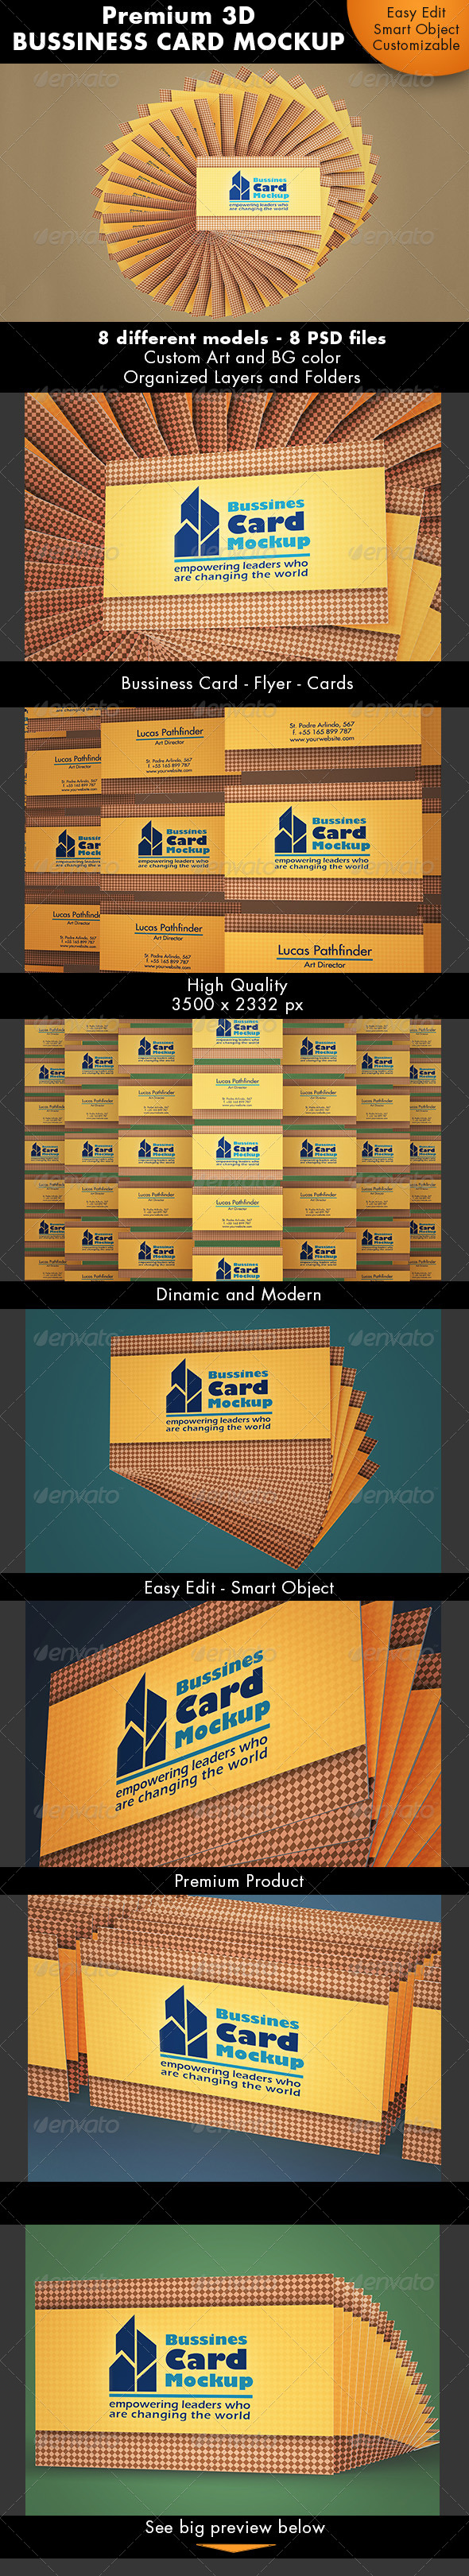 Bussiness Card Mockup - Business Cards Print